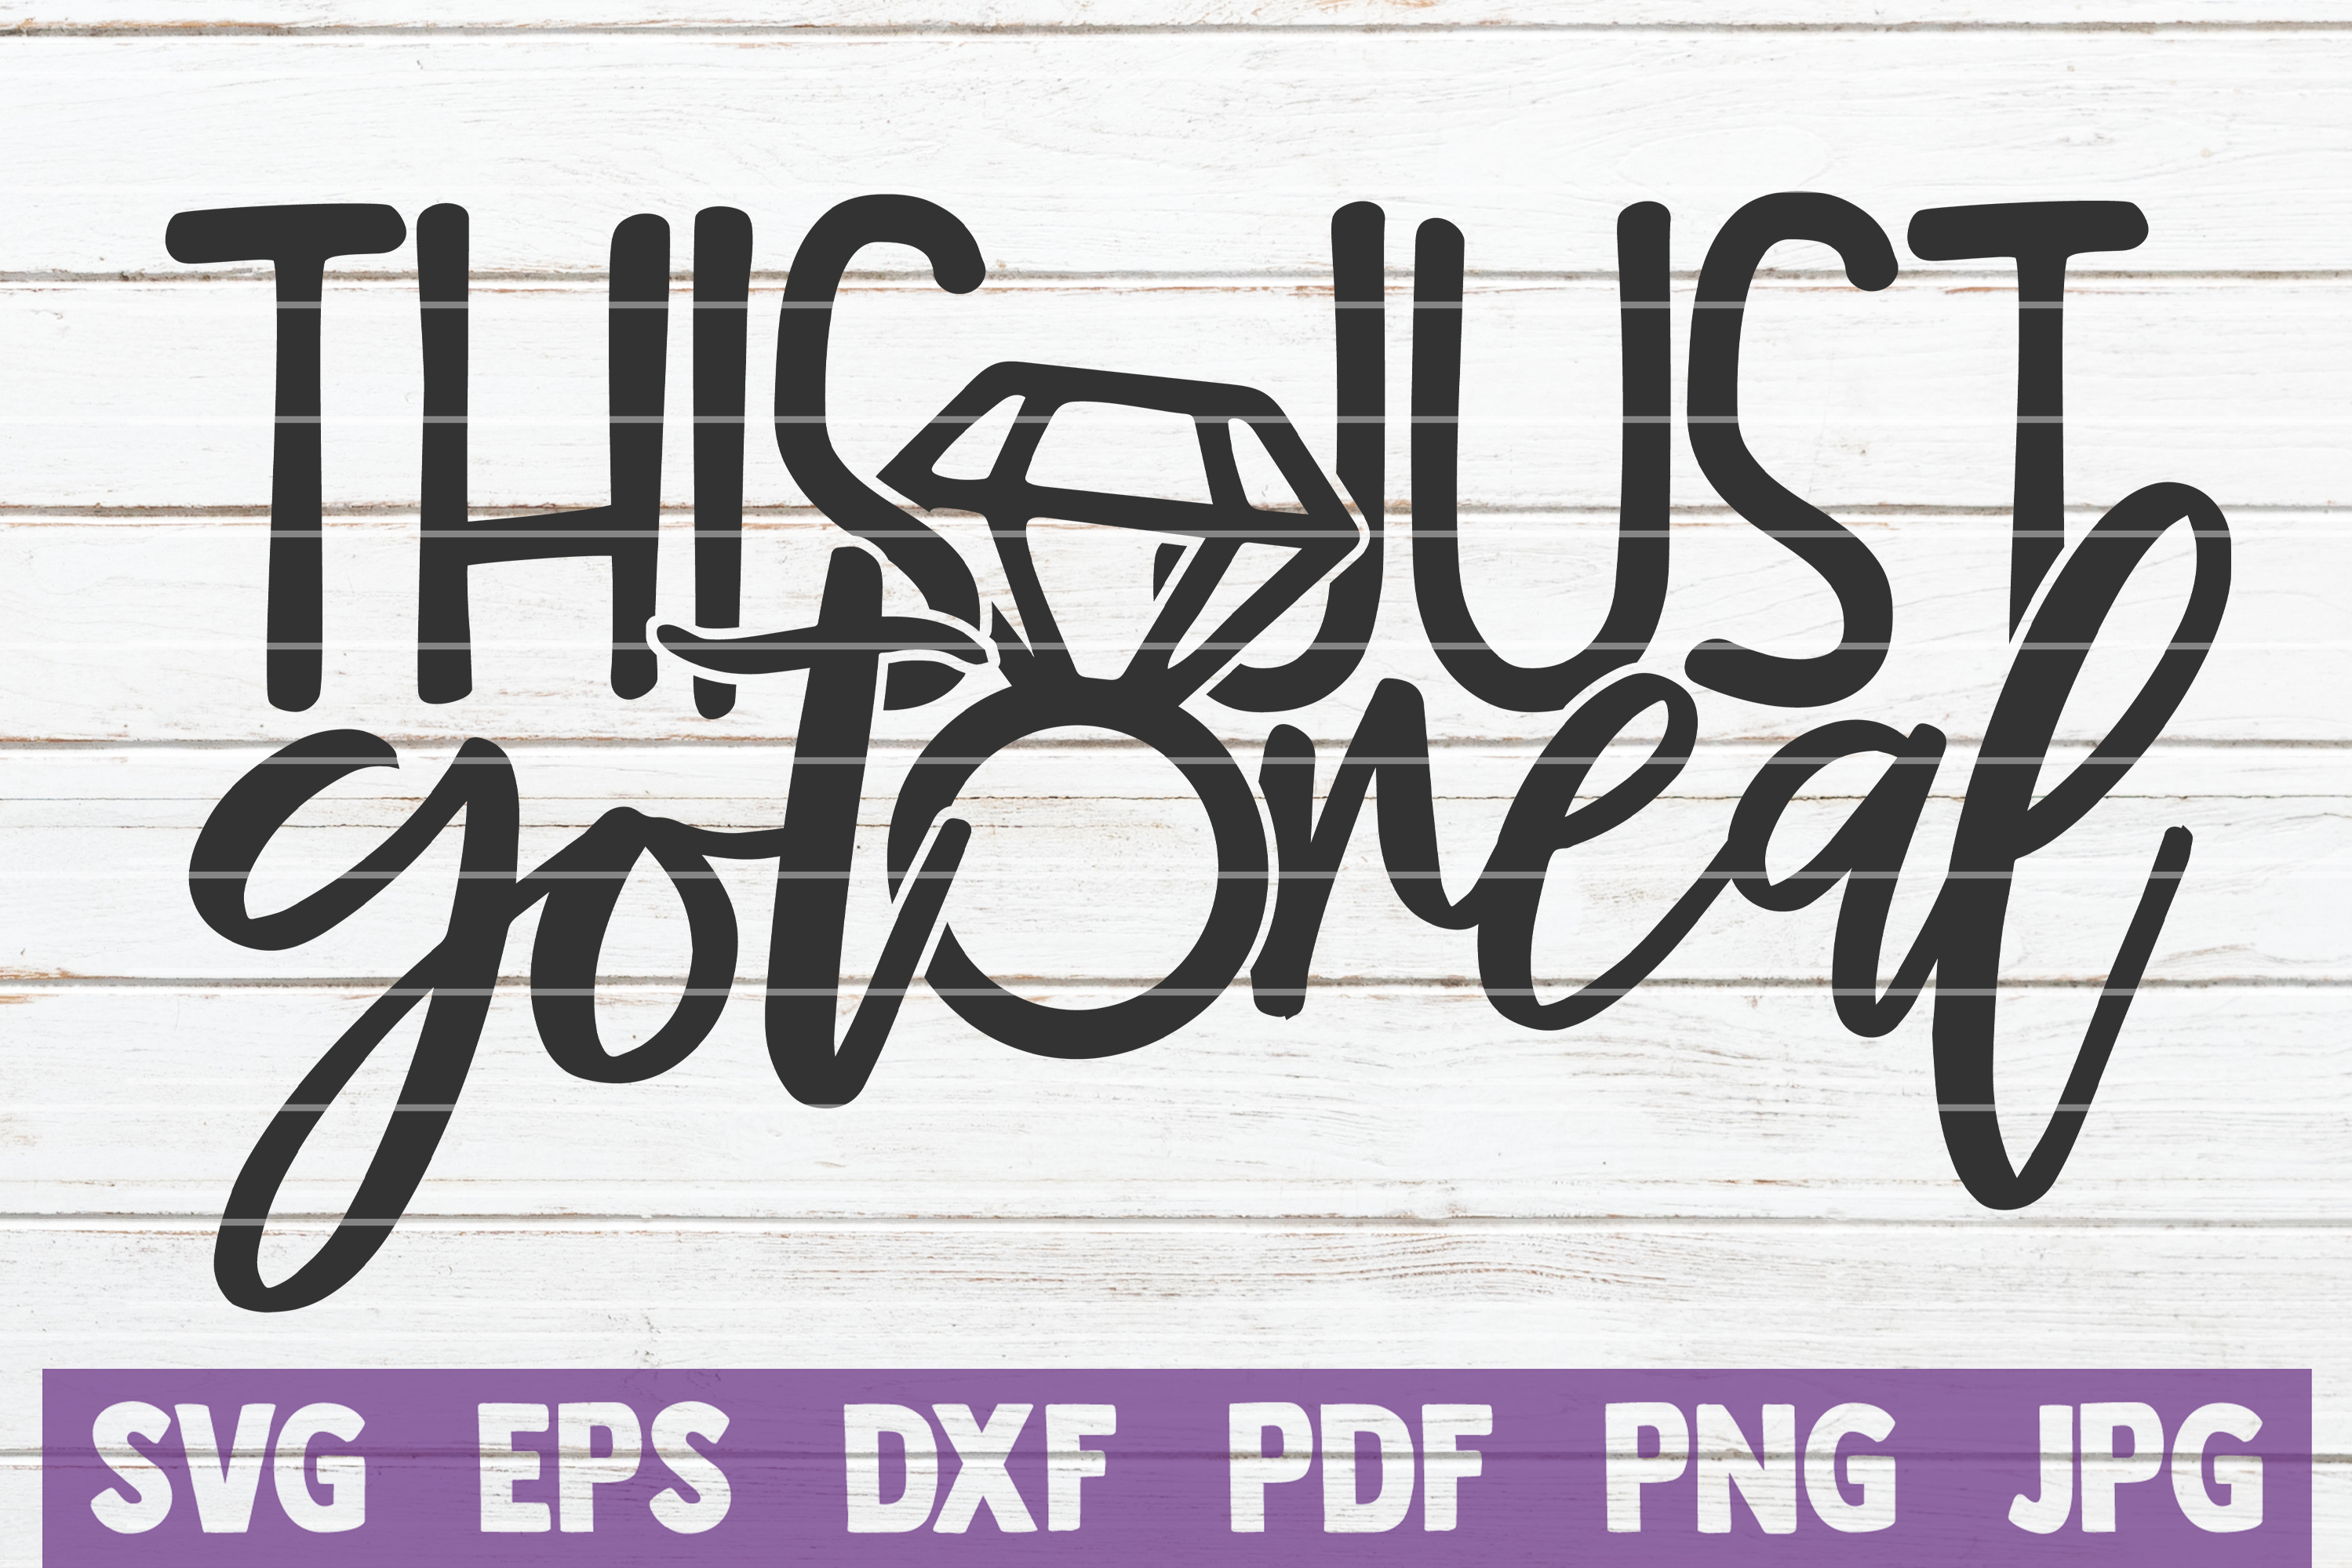 Download Free This Just Got Real Graphic By Mintymarshmallows Creative Fabrica for Cricut Explore, Silhouette and other cutting machines.